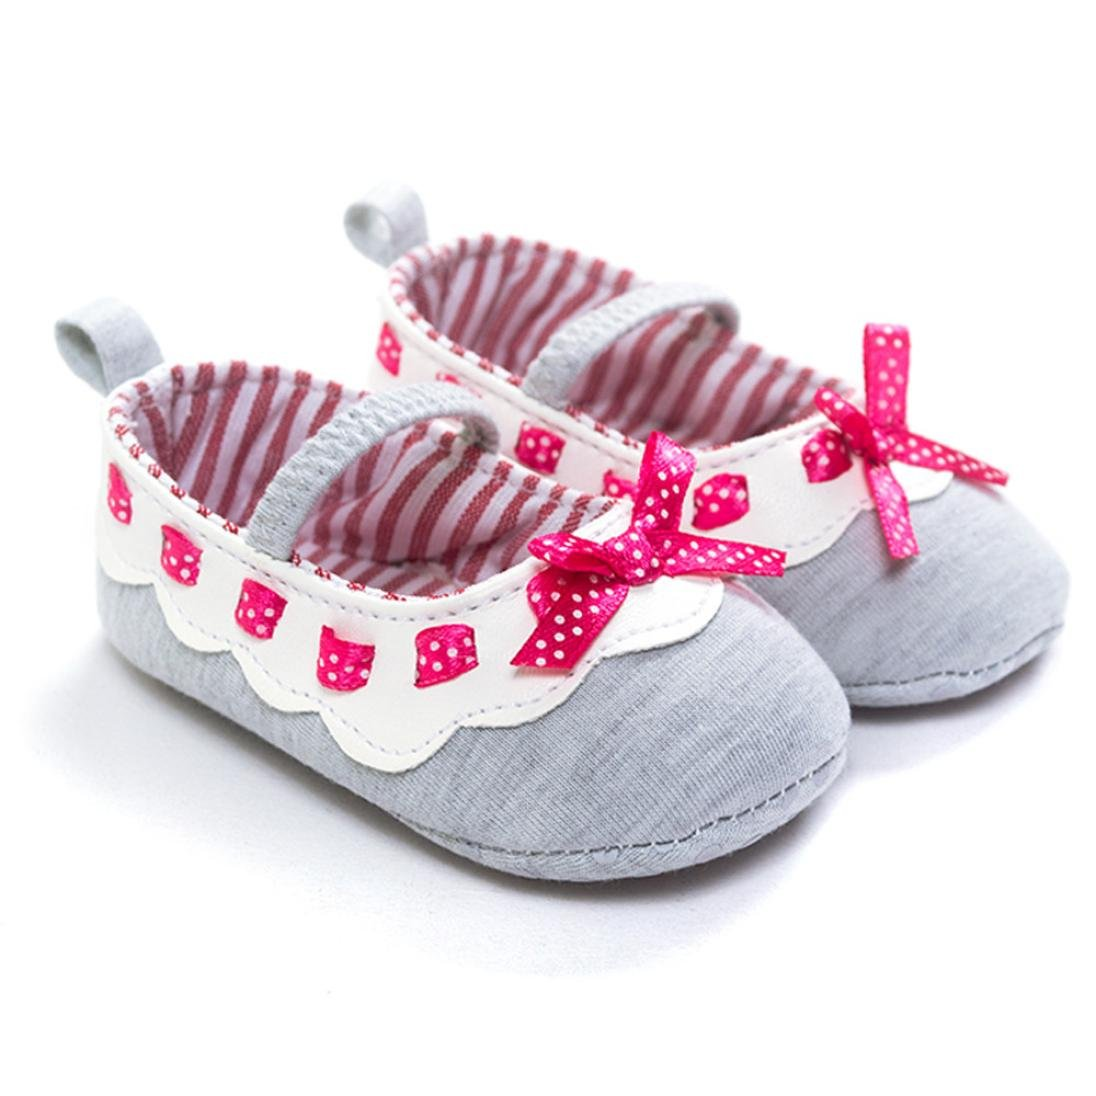 Baby Girl 0-18 Months Bowknot Shoes Anti-Slip Soft Sole Toddler Prewalker Shoes Egmy Baby Shoes